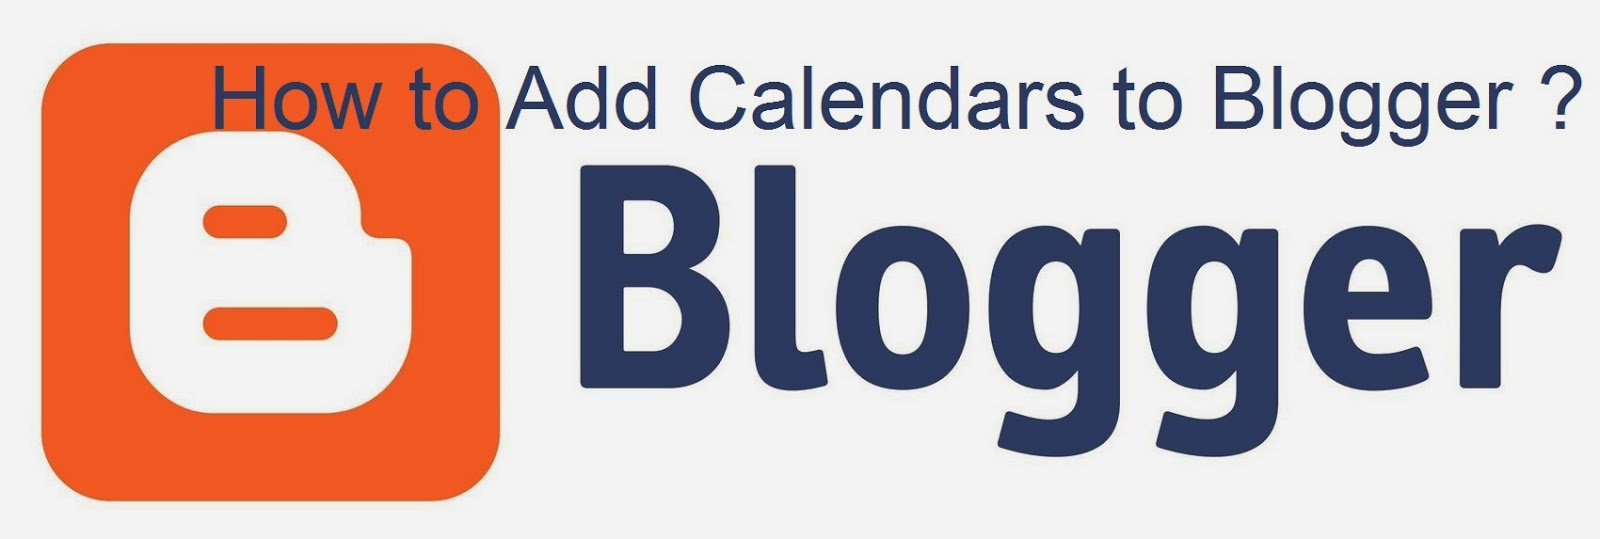 How to Add Calendars to Blogger : eAskme